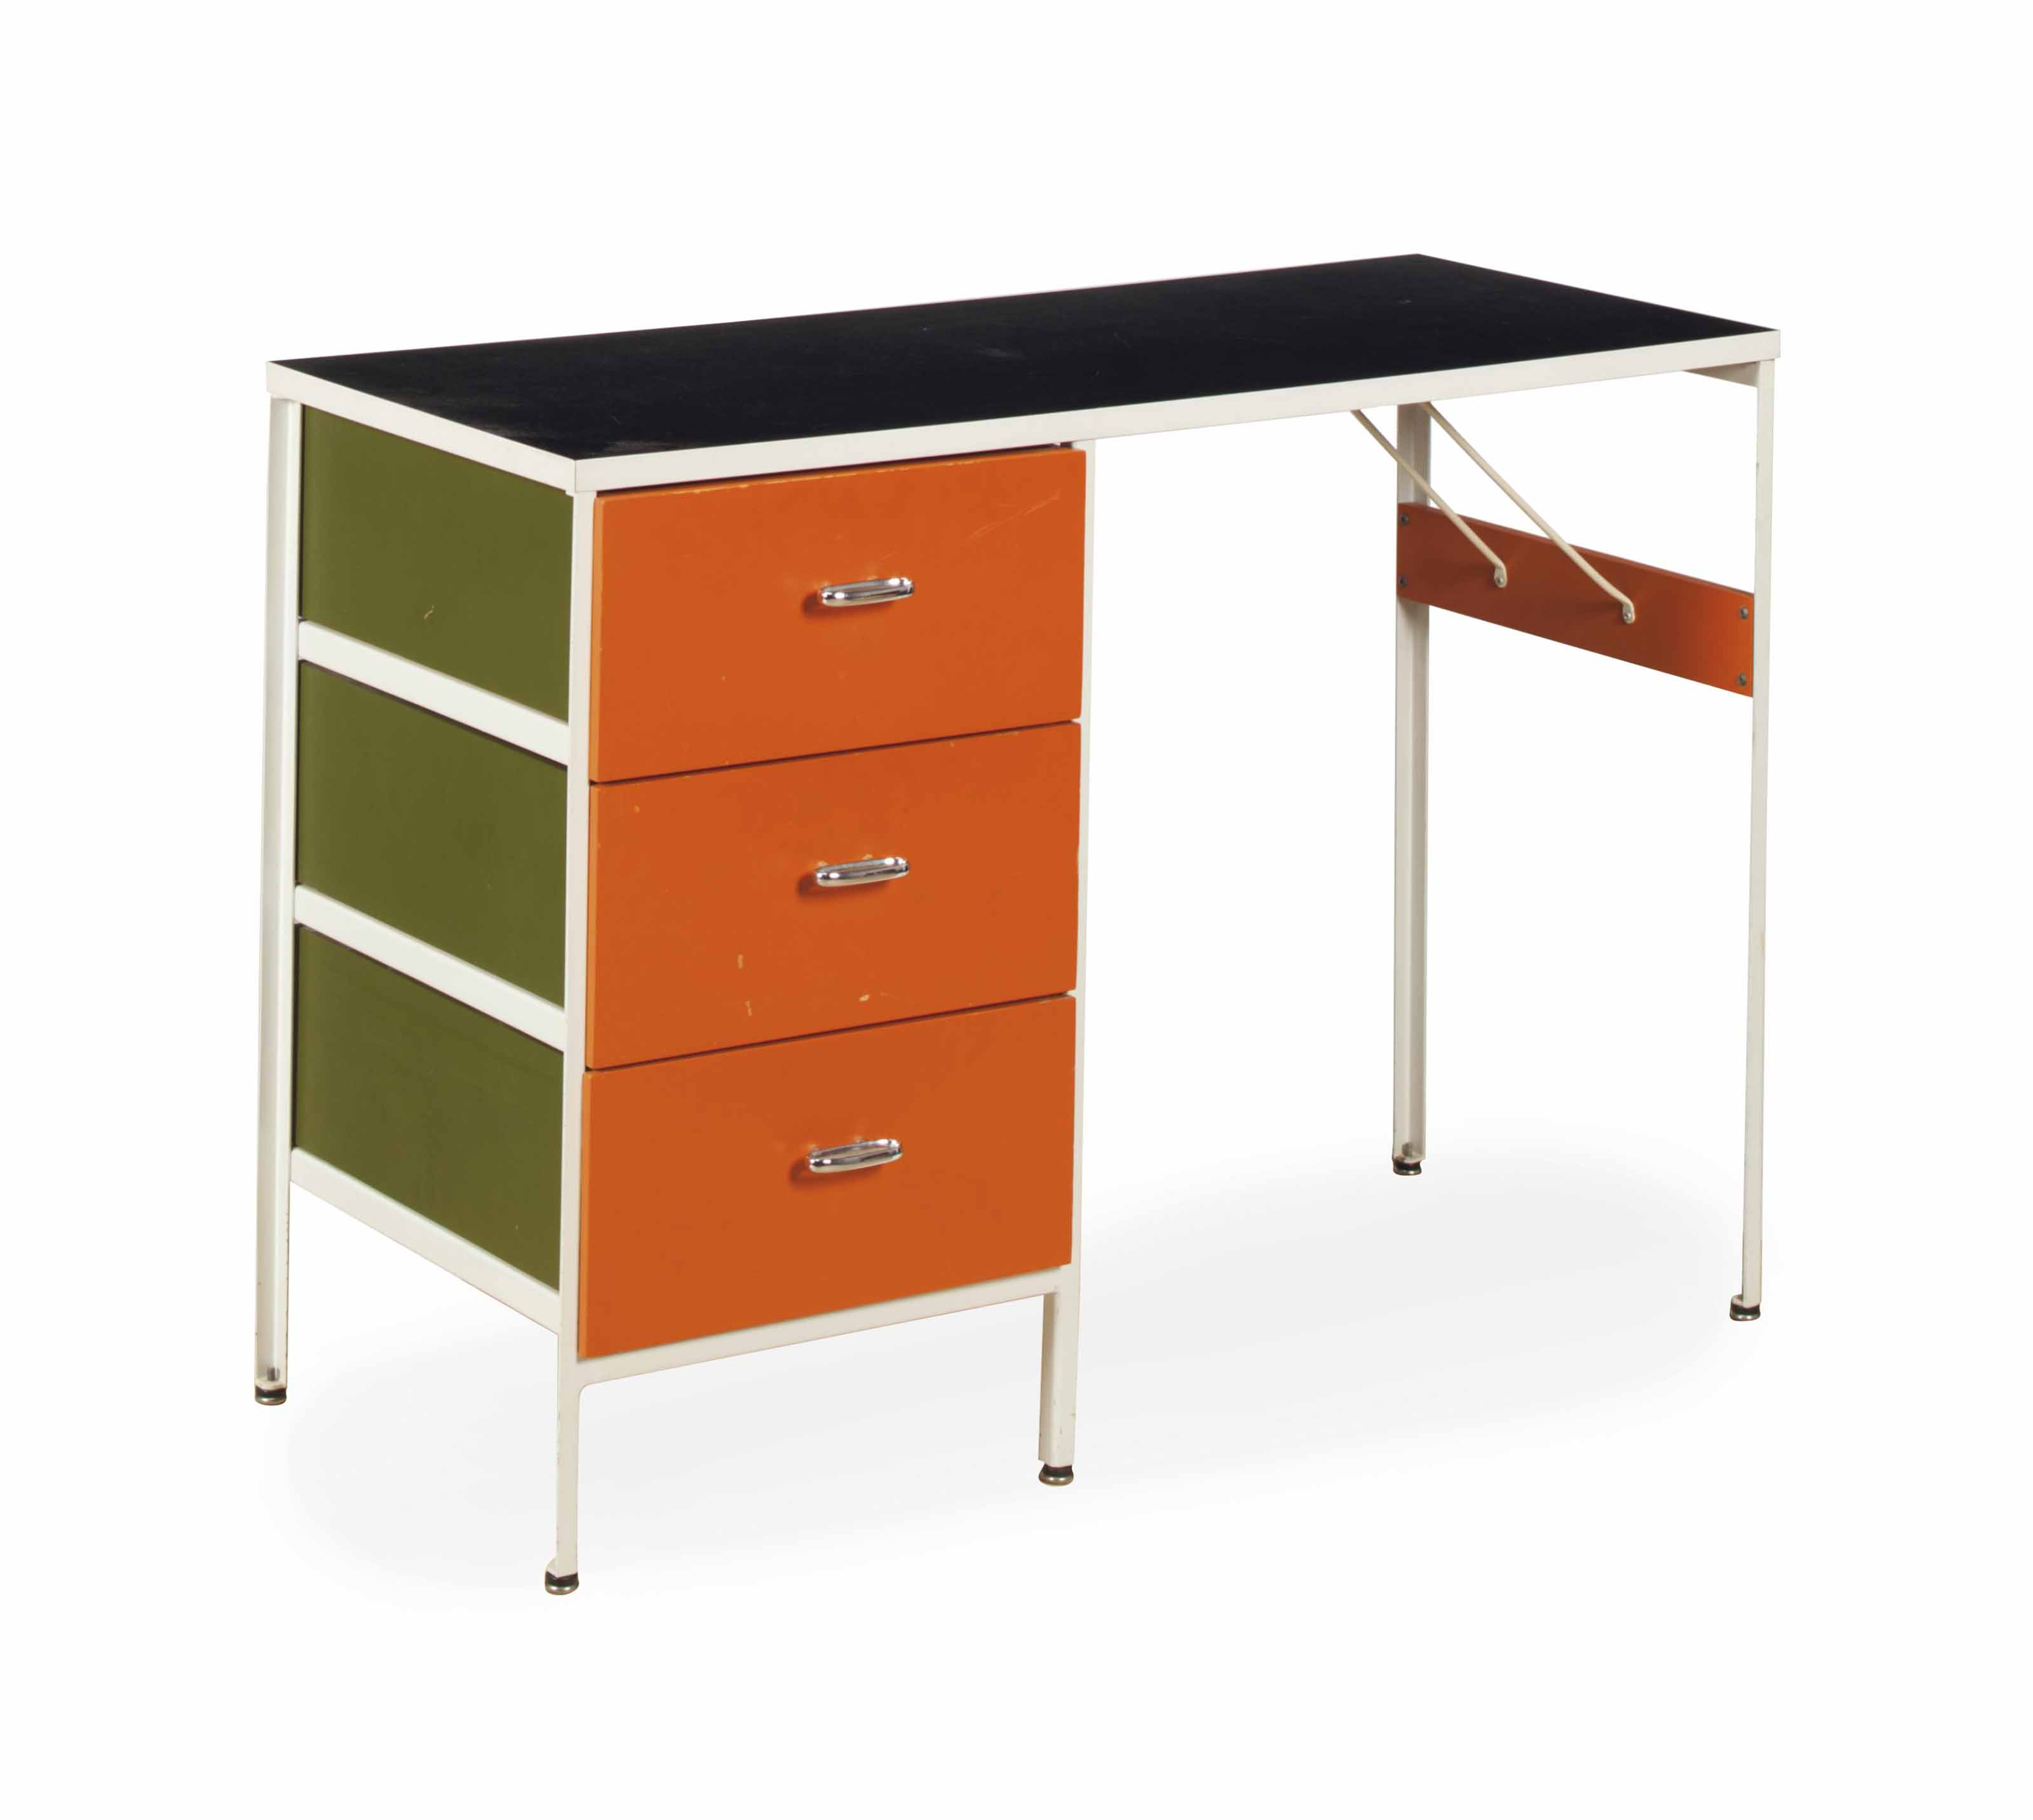 A WHITE ENAMELED METAL, LACQUERED WOOD AND BLACK LAMINATED PEDESTAL DESK,